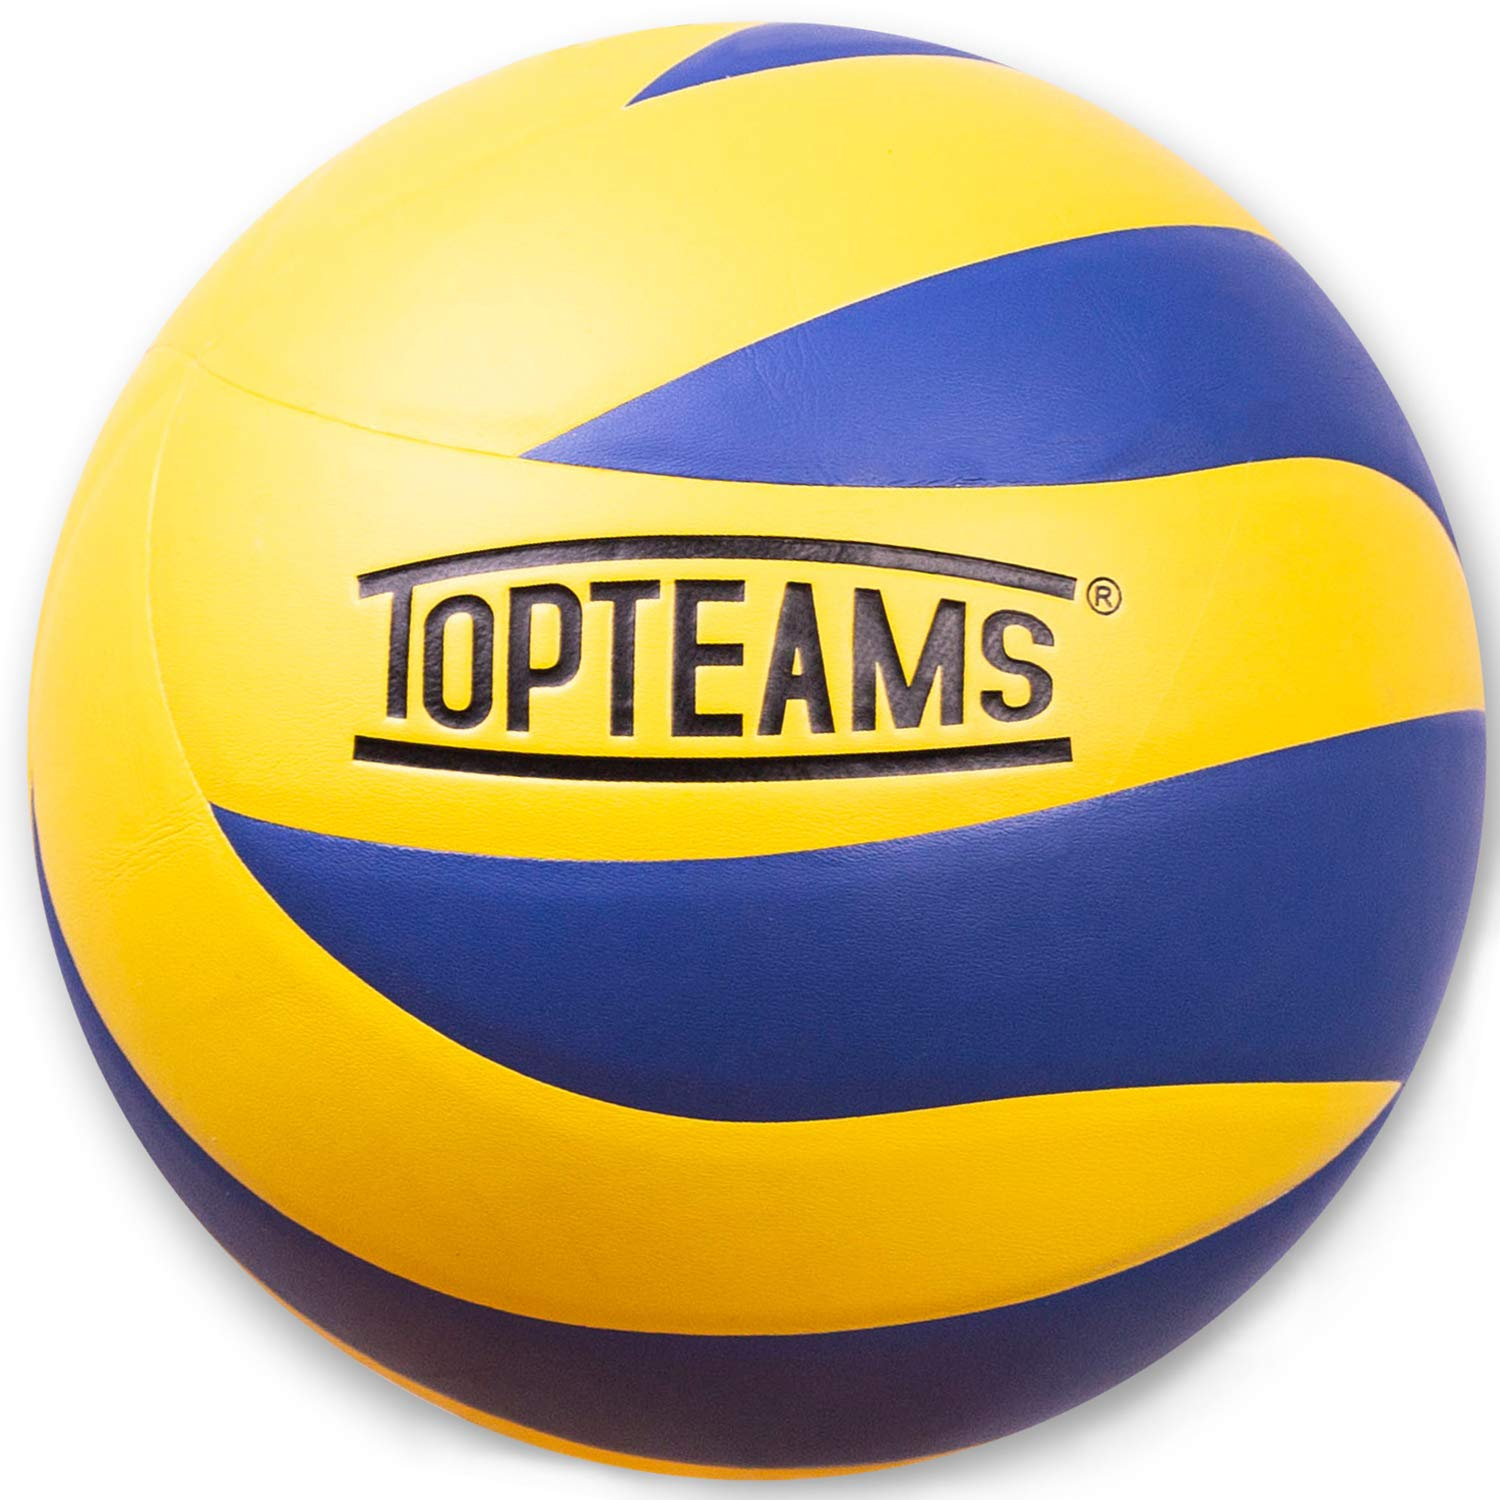 TOPteams Ballon de Beach Volley, Ballon de Volley, Volley-Ball, Soft Touch pour Adultes et Enfants.